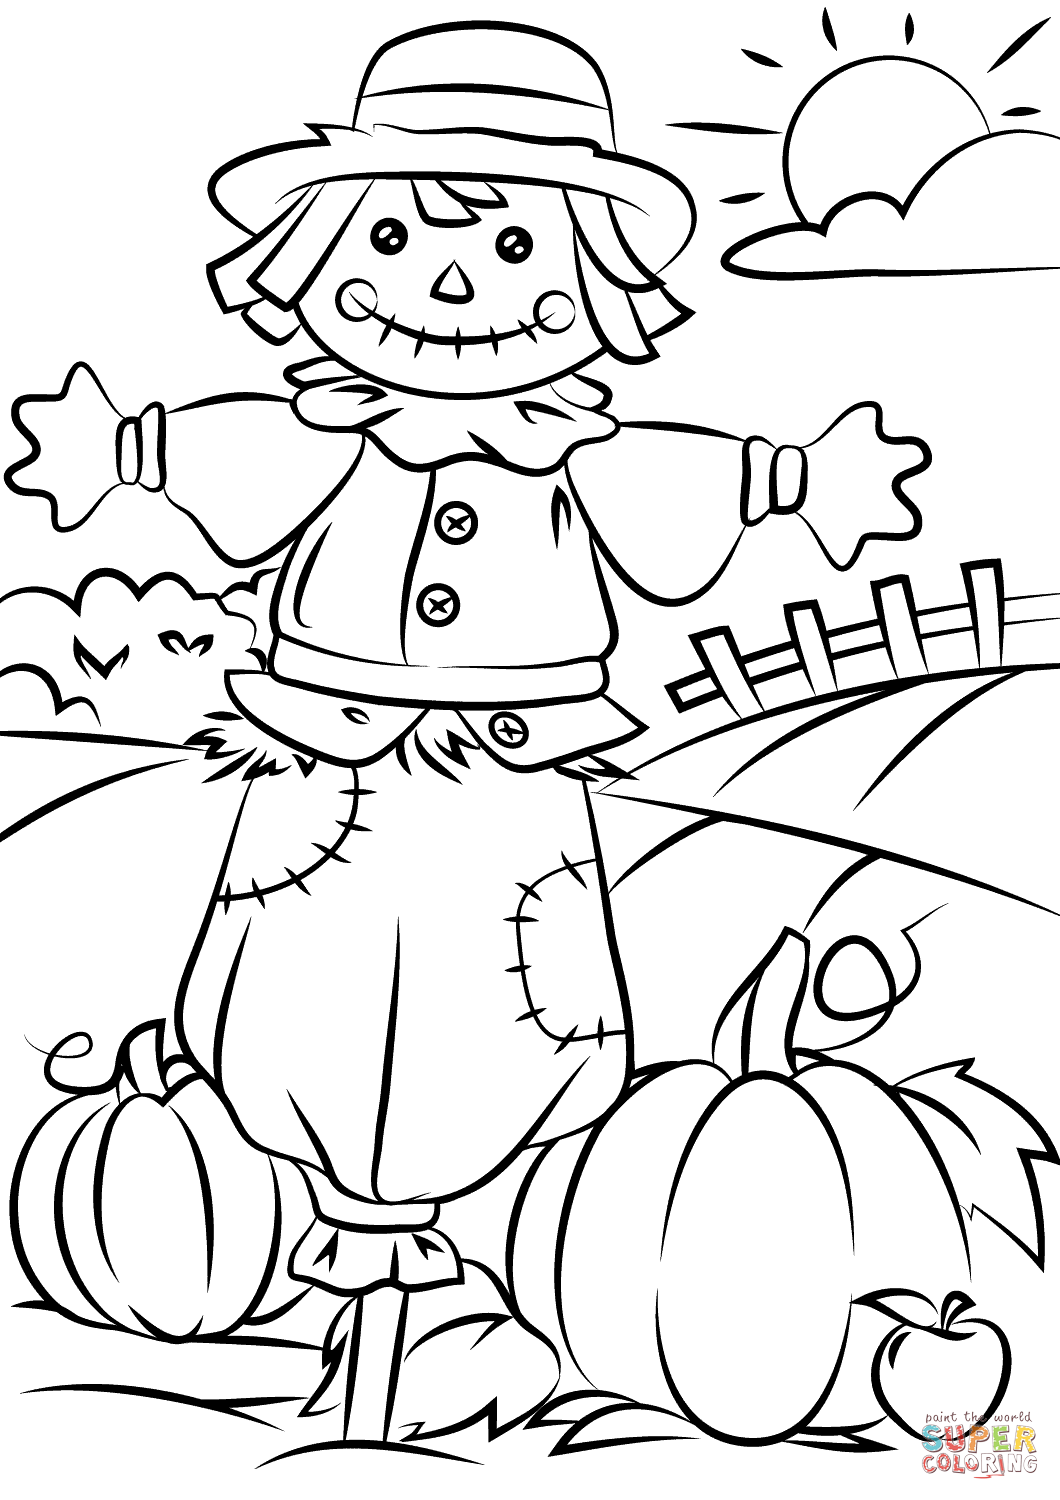 farm scene coloring pages - photo#34